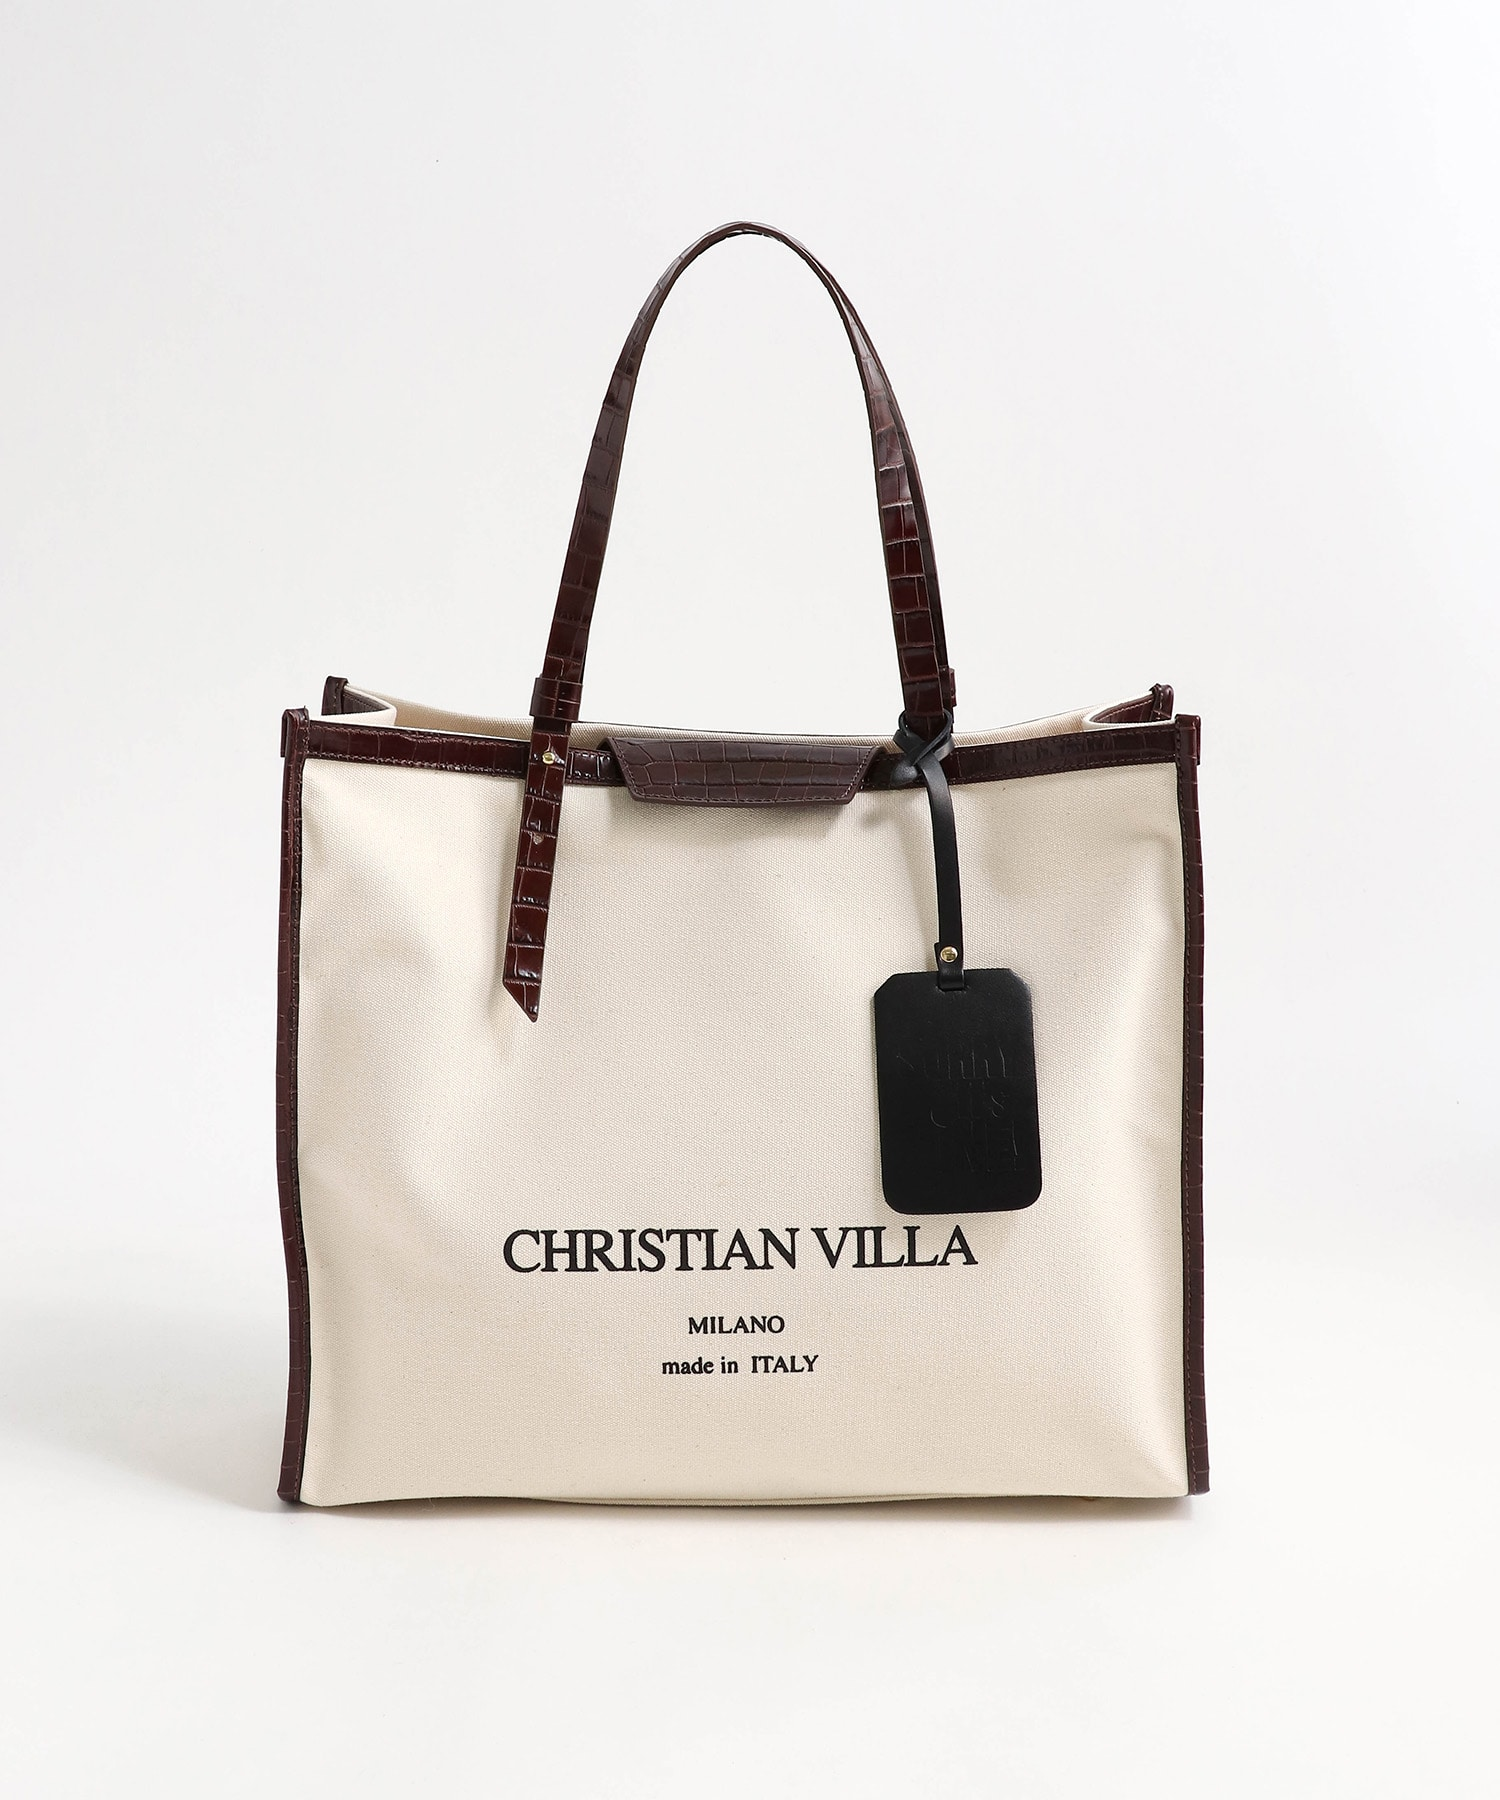 〈MORE4月号掲載〉【 CHRISTIAN VILLA / クリスチャン・ヴィラ 】chevron canbas toto bag L